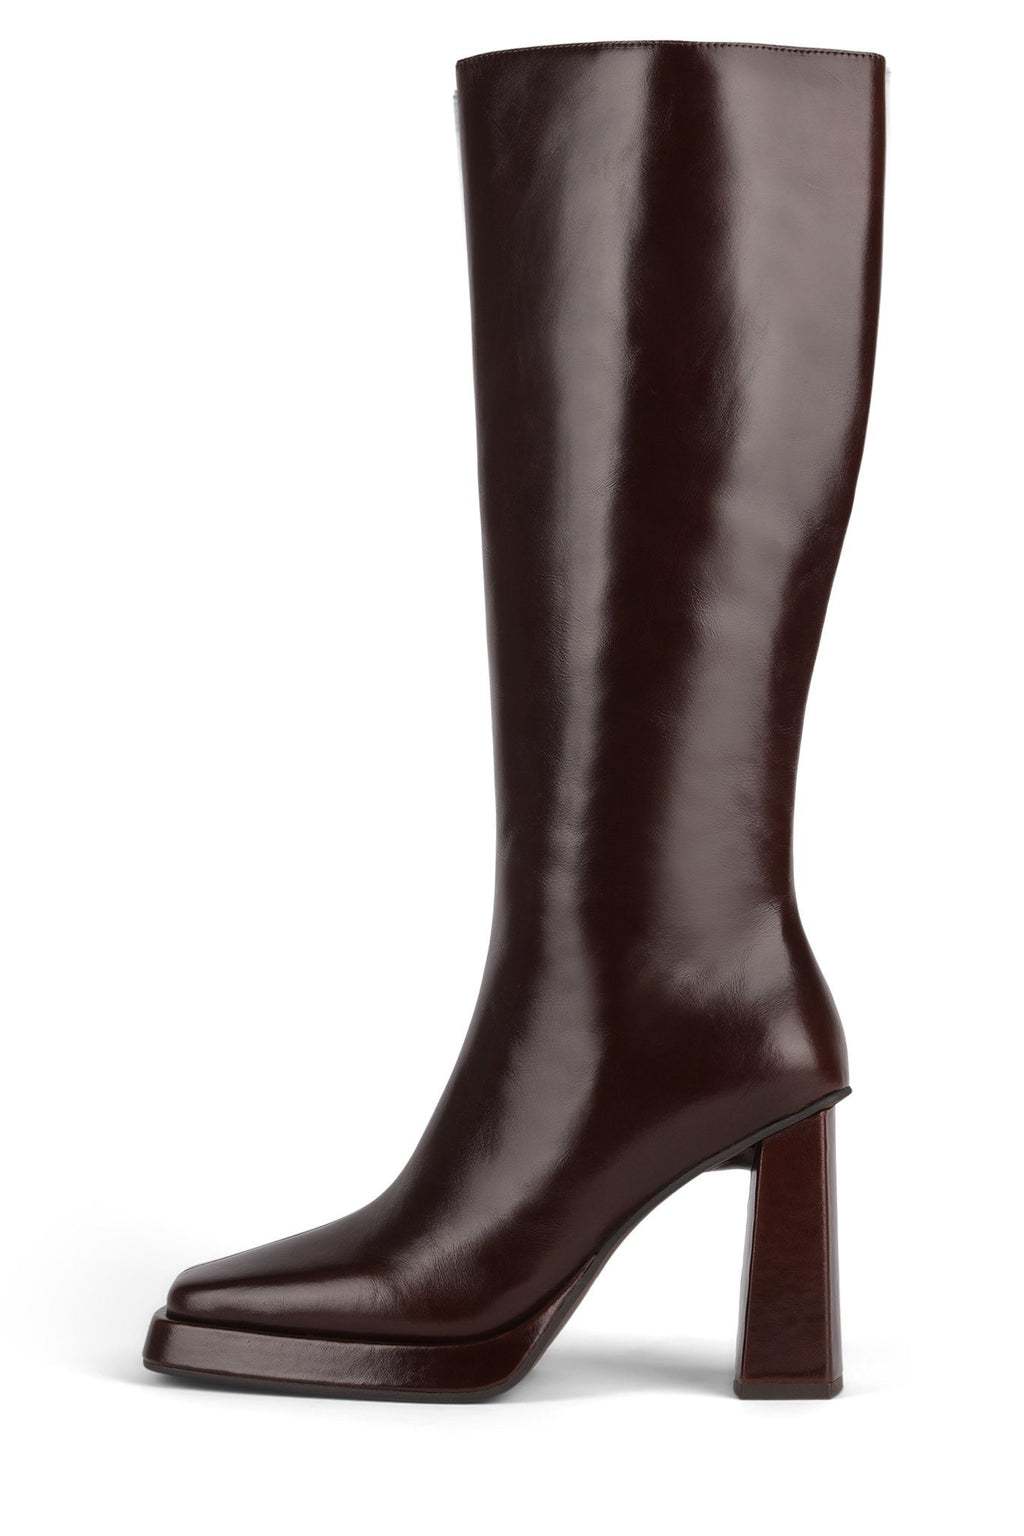 MAXIMAL Knee-High Boot YYH Brown 6